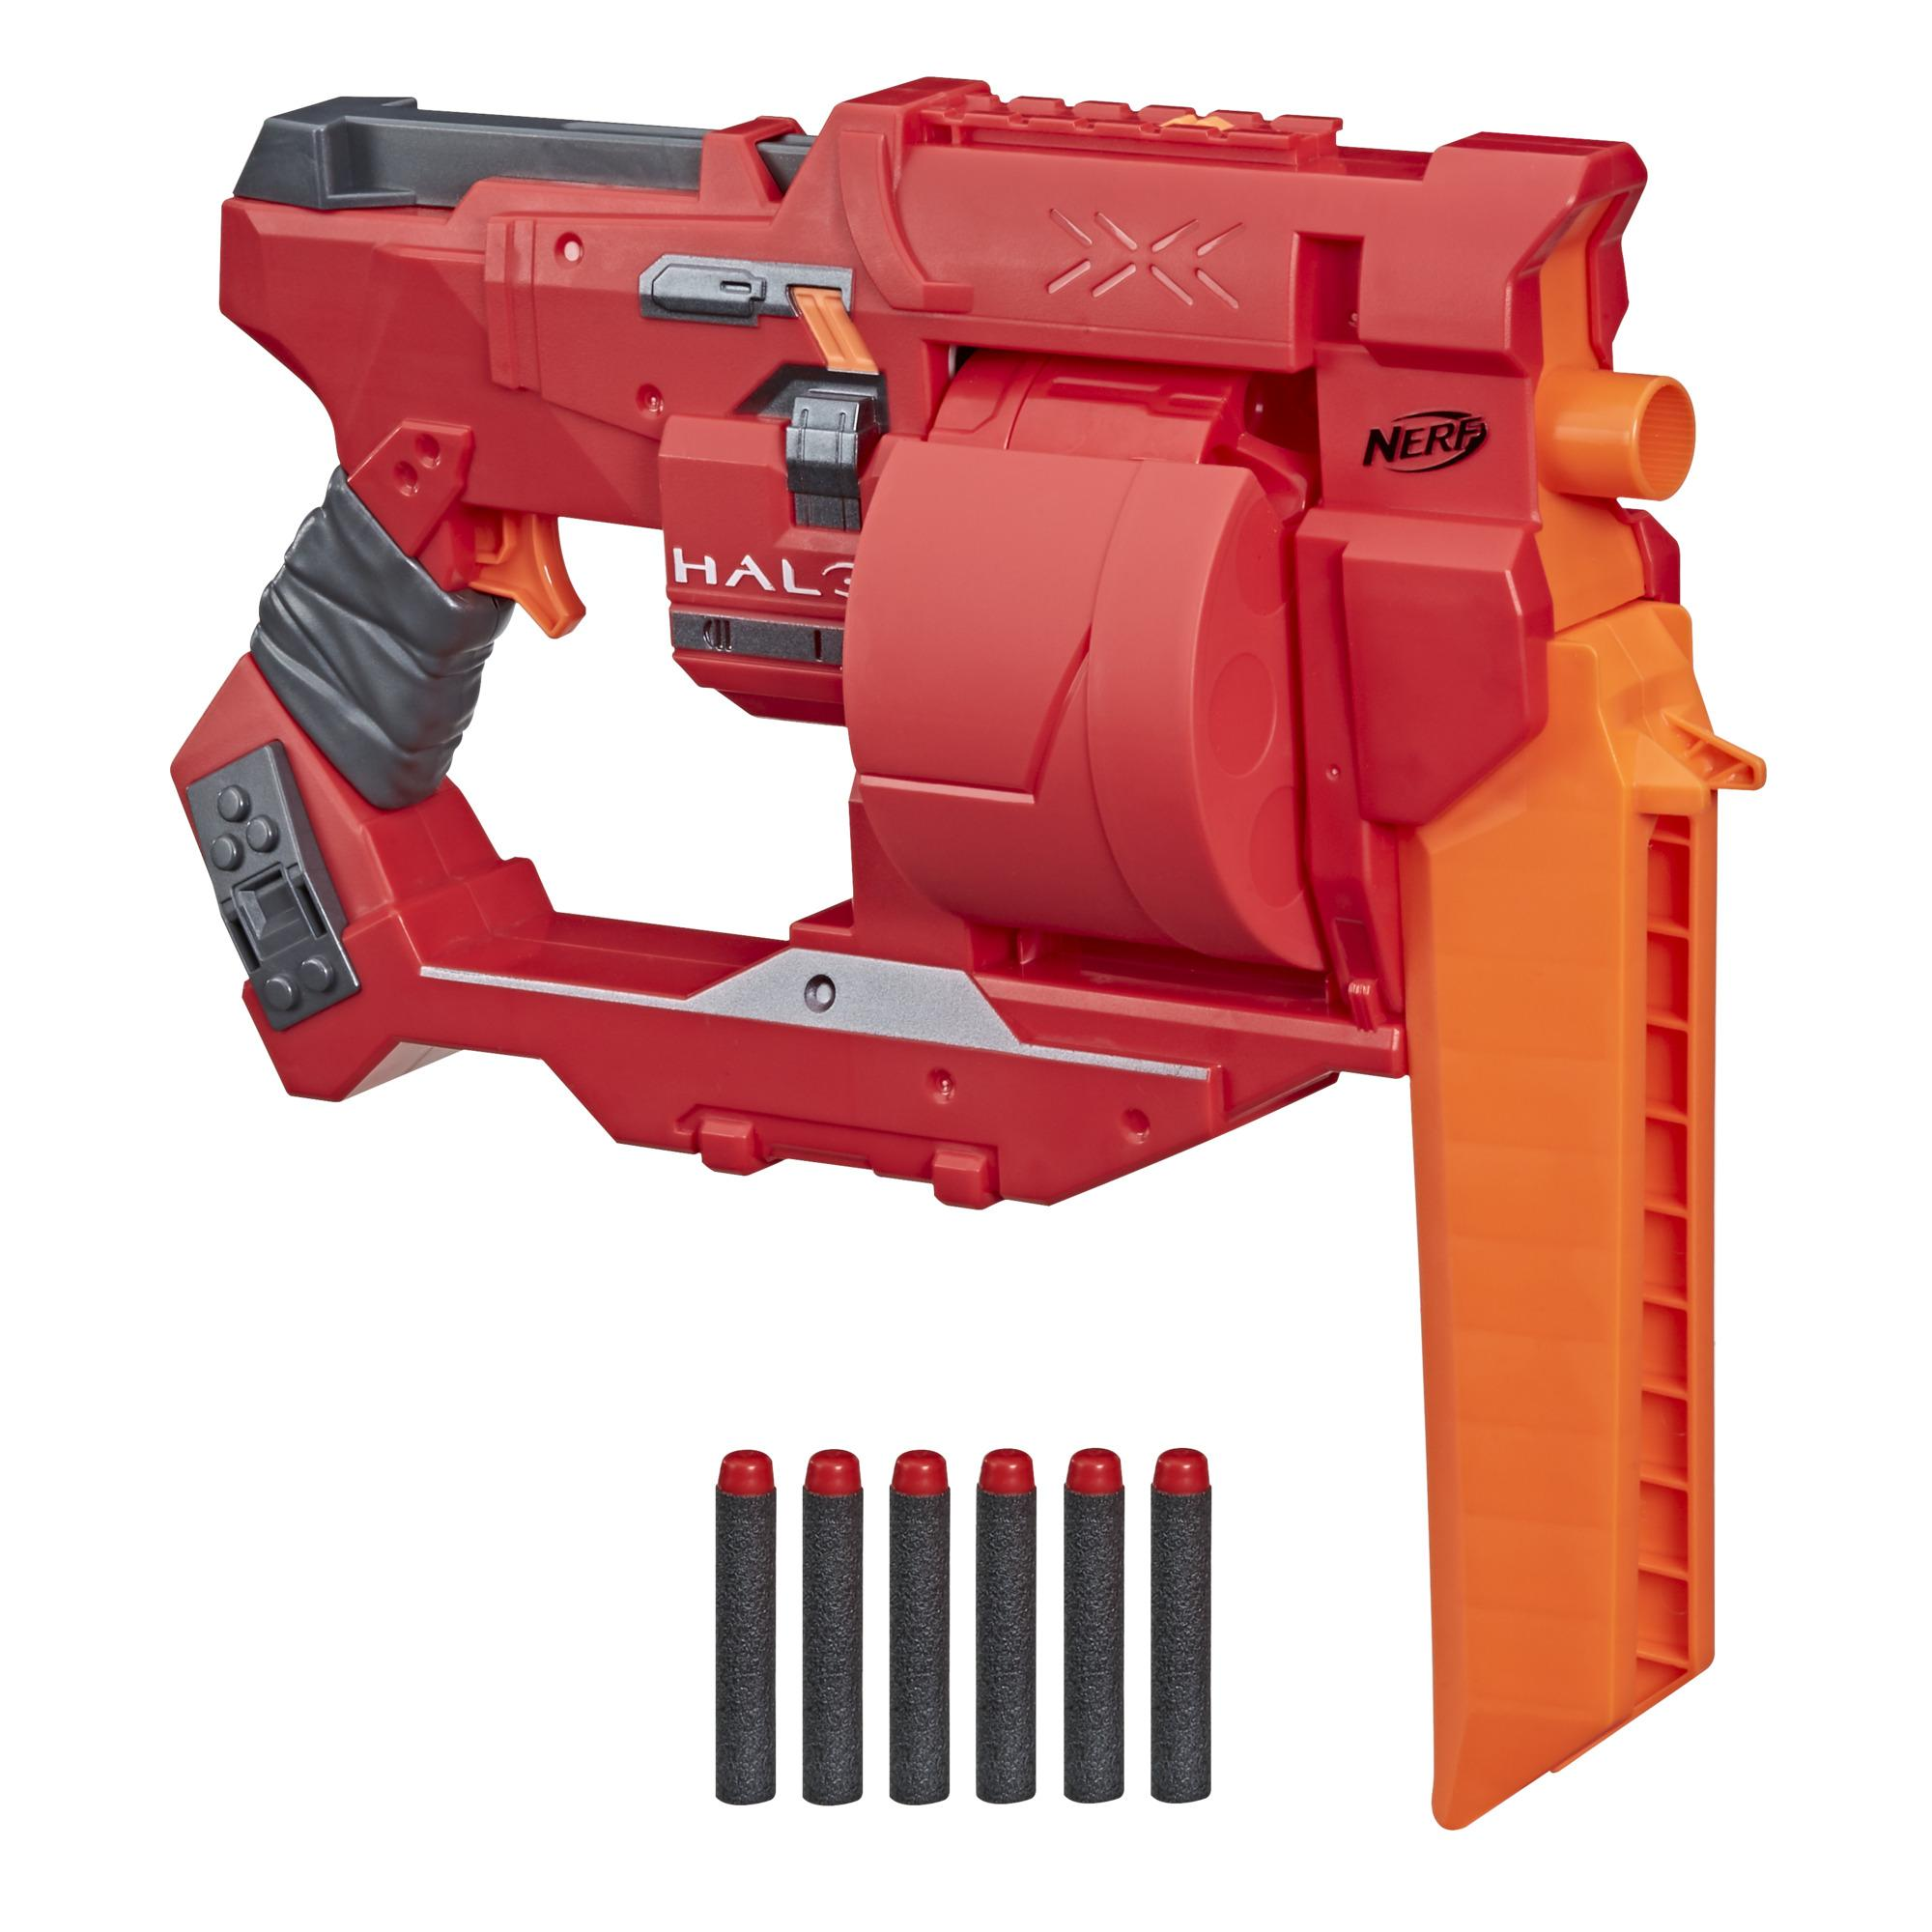 Nerf Halo Mangler Dart Blaster -- Pull-Back Priming Handle, Rotating 6-Dart Drum -- Includes 6 Official Nerf Elite Darts